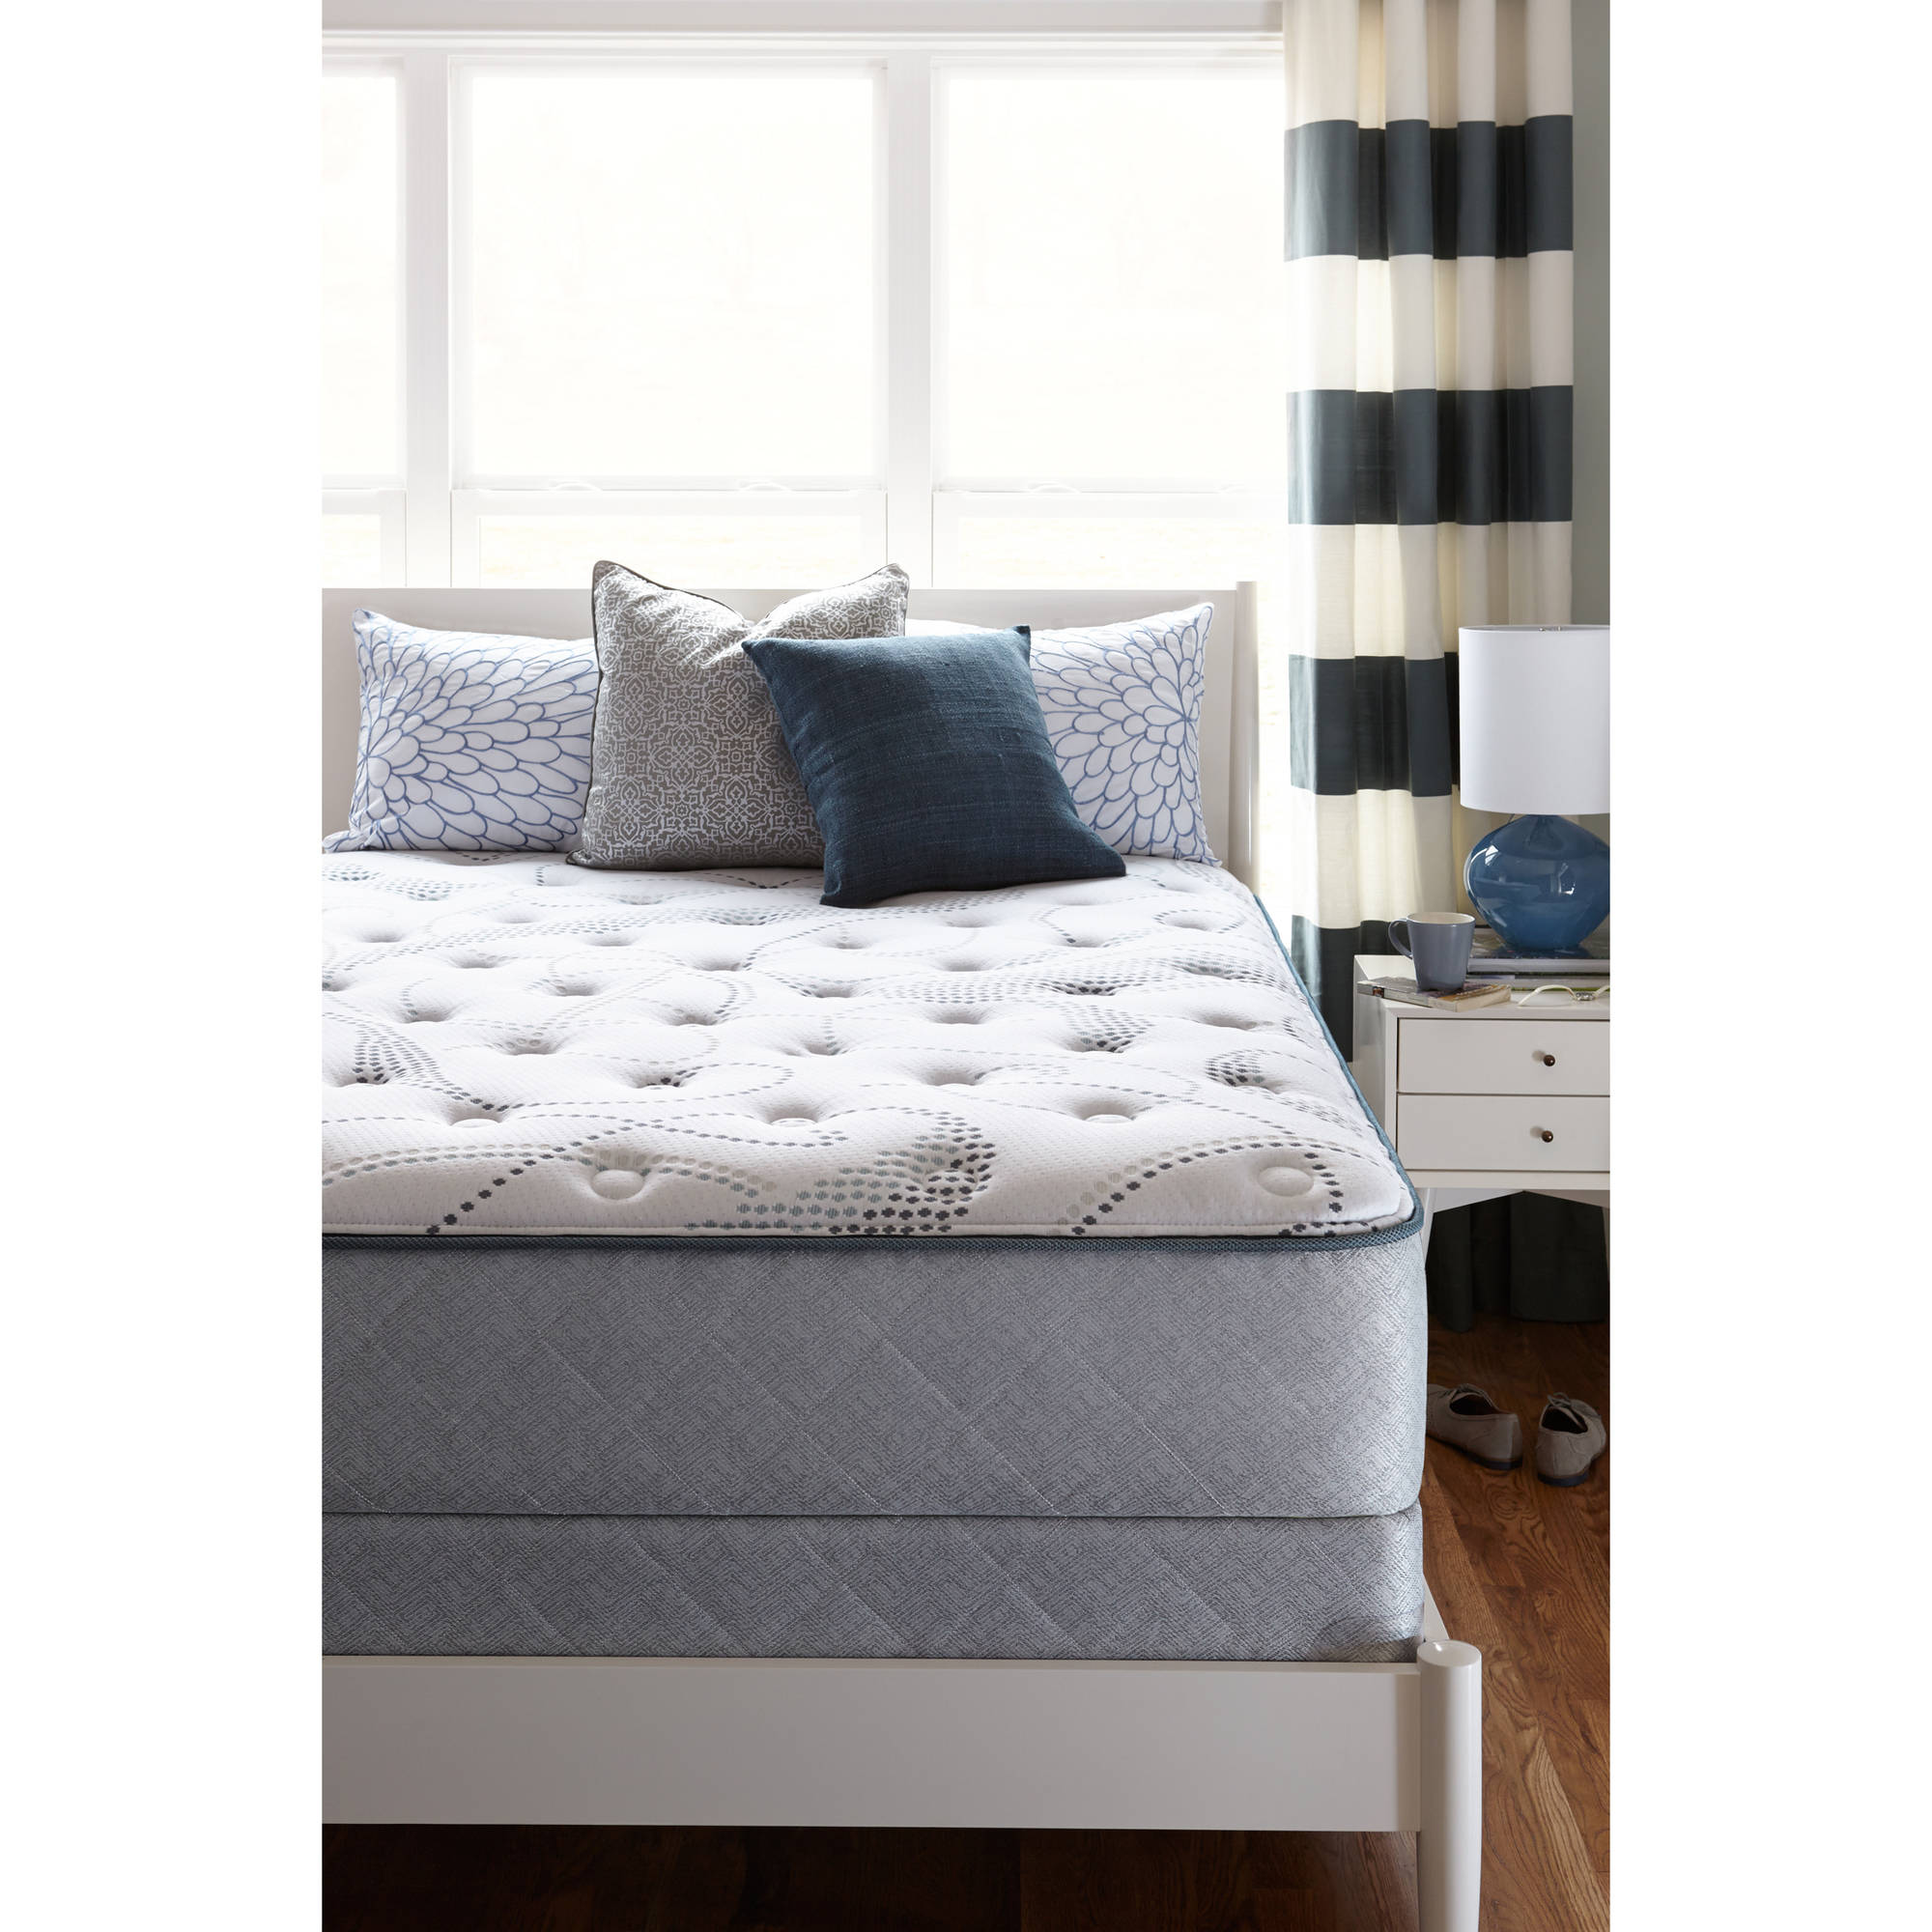 style modern firm photo of nordli angled frame headboard headboards and comfortable has lean mattress luxury is queen beautiful an bed against to